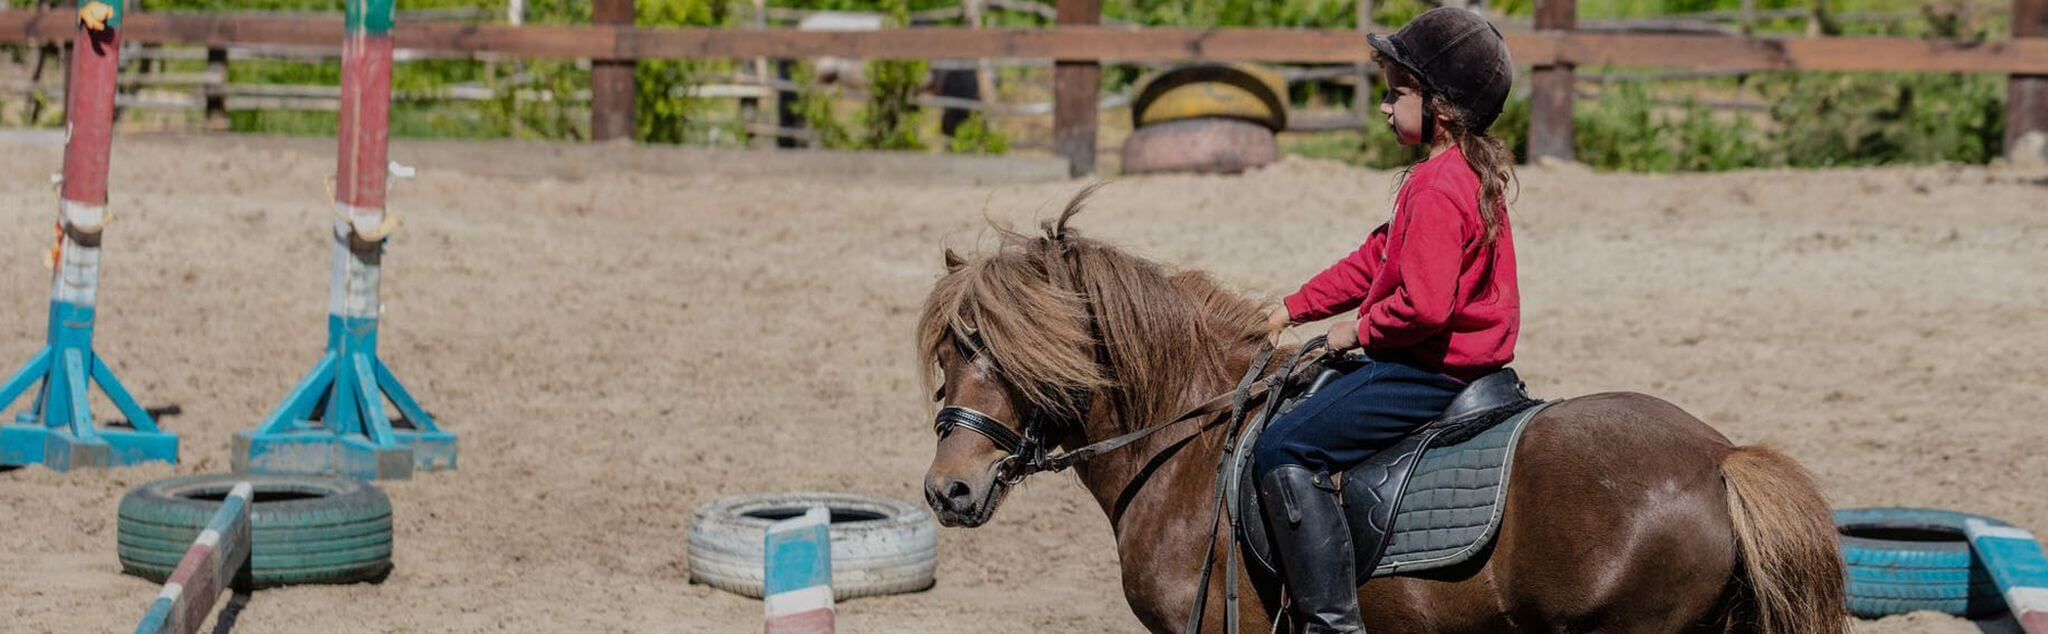 Horse Riding Lessons in L' Espluga De Francoli